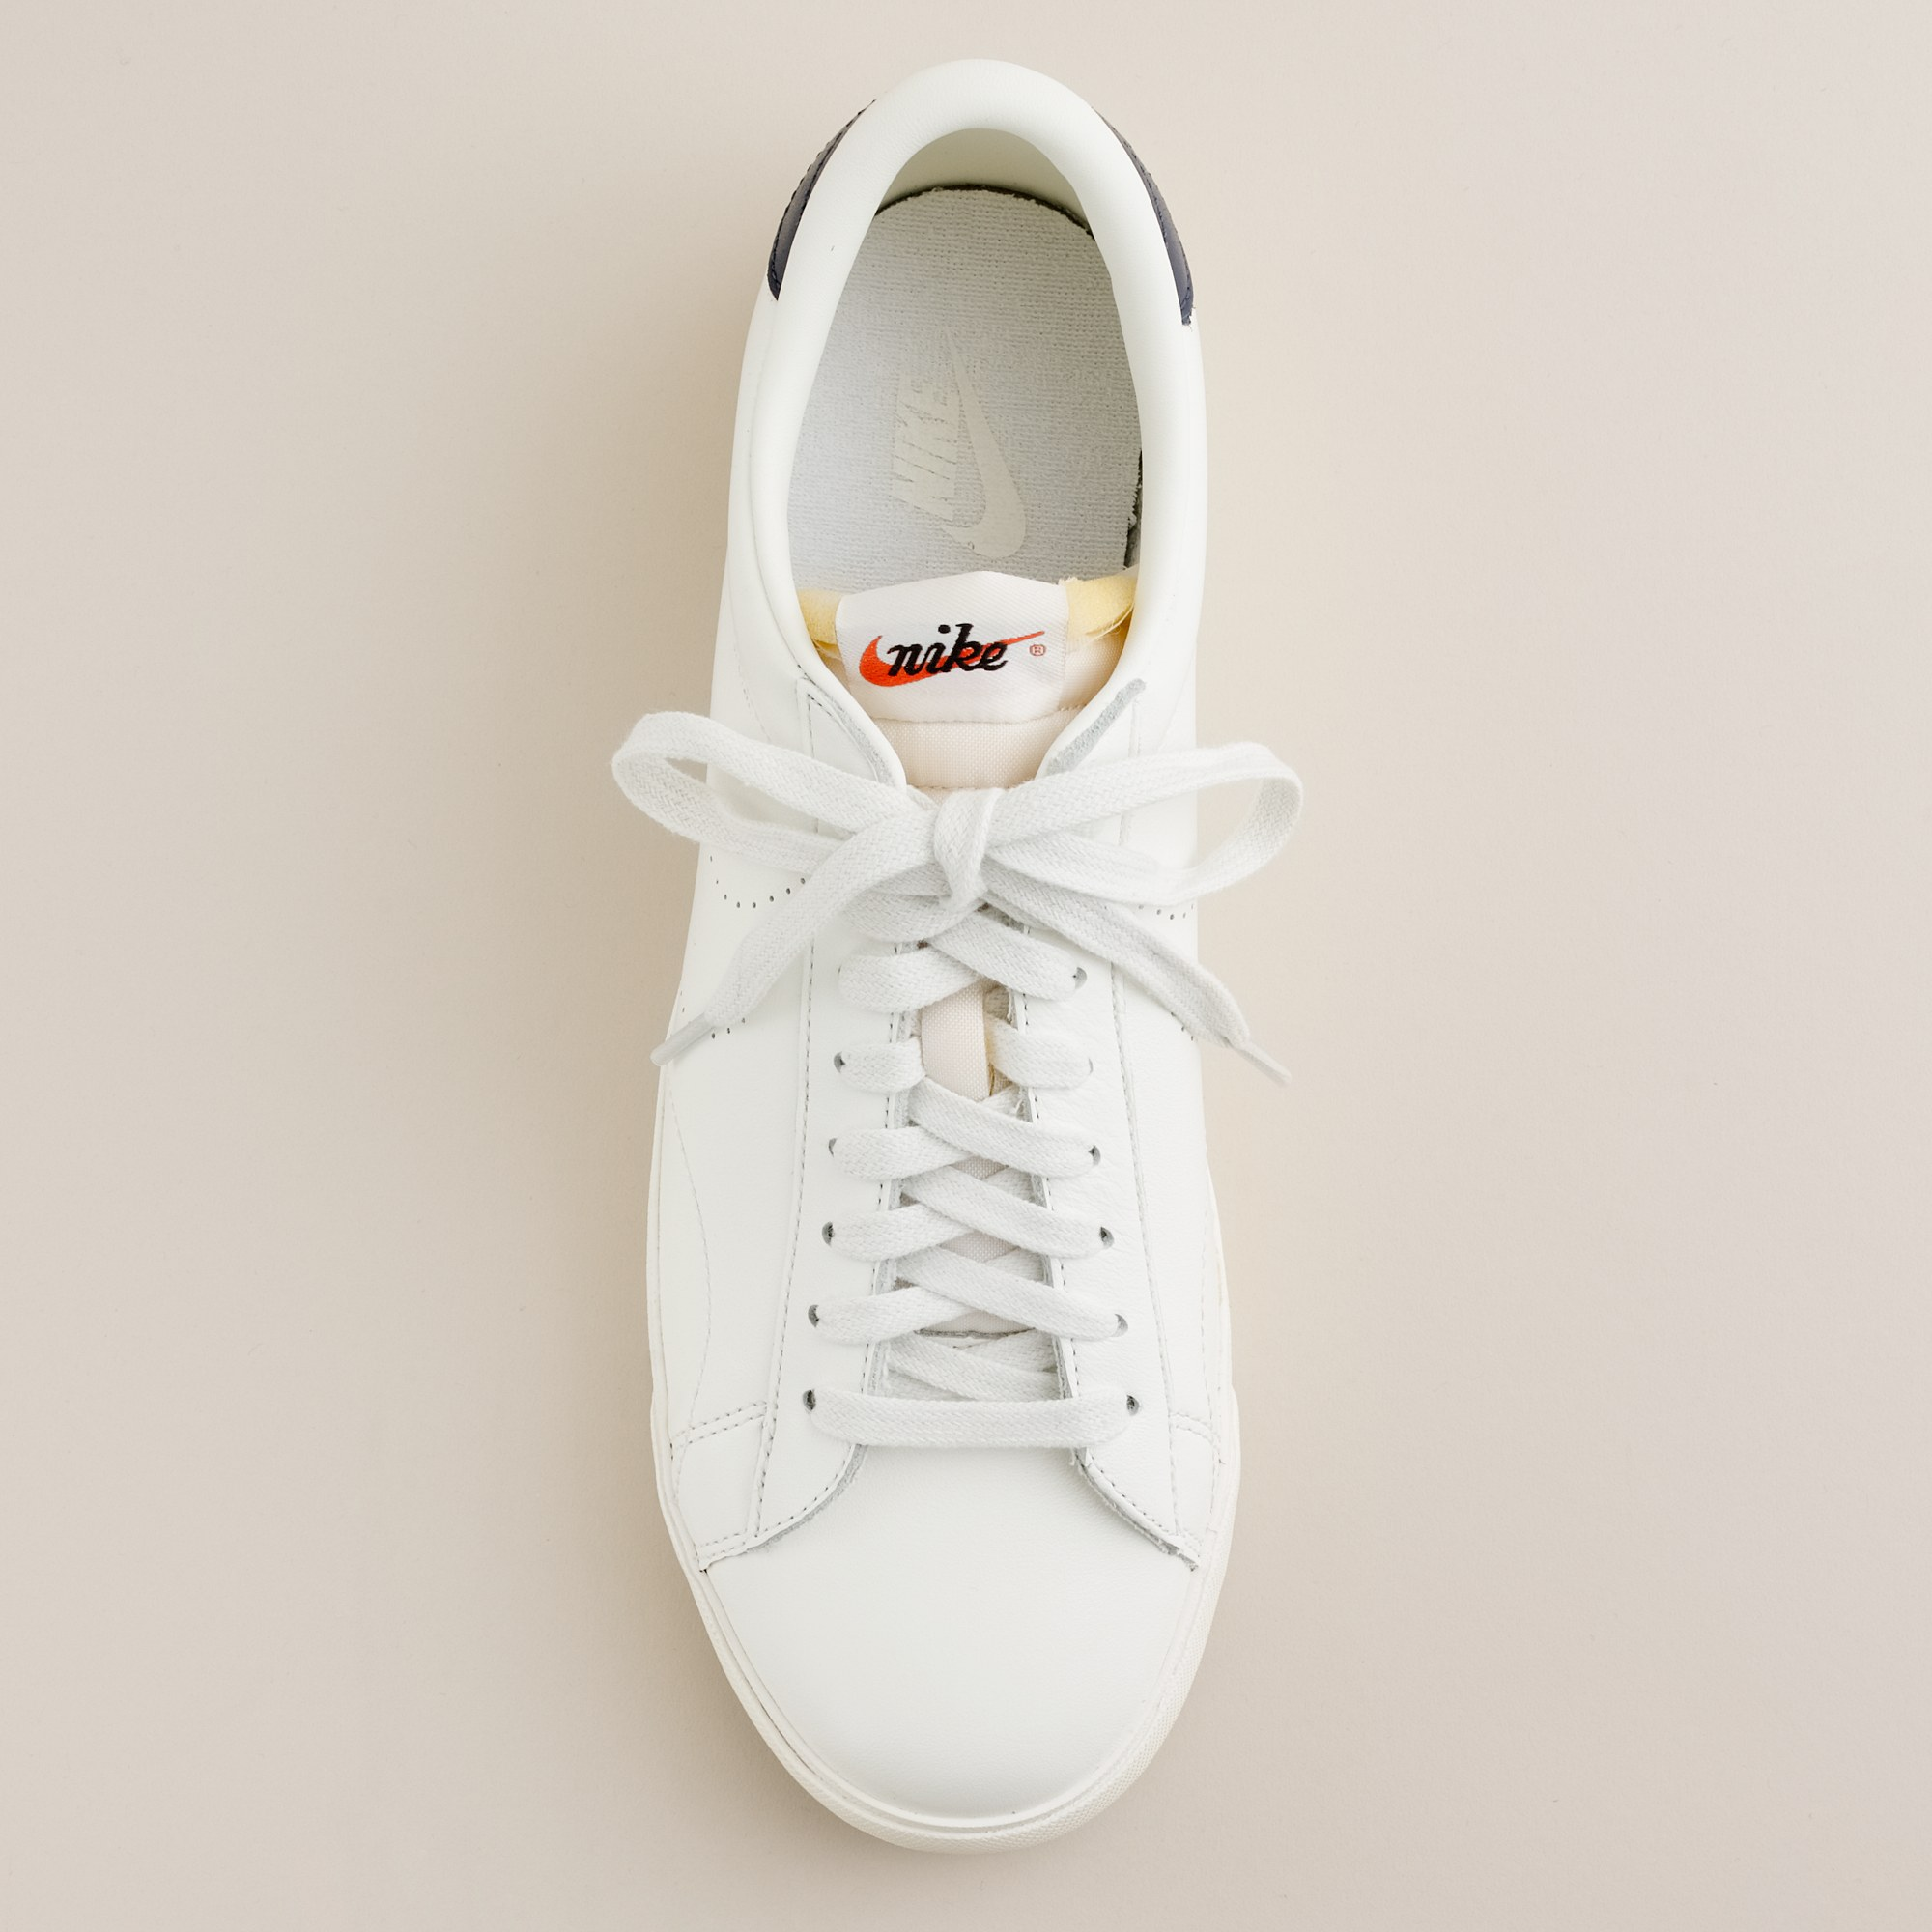 6448a3e217c2 ... coupon code for lyst j.crew nike for j.crew vintage collection leather  tennis